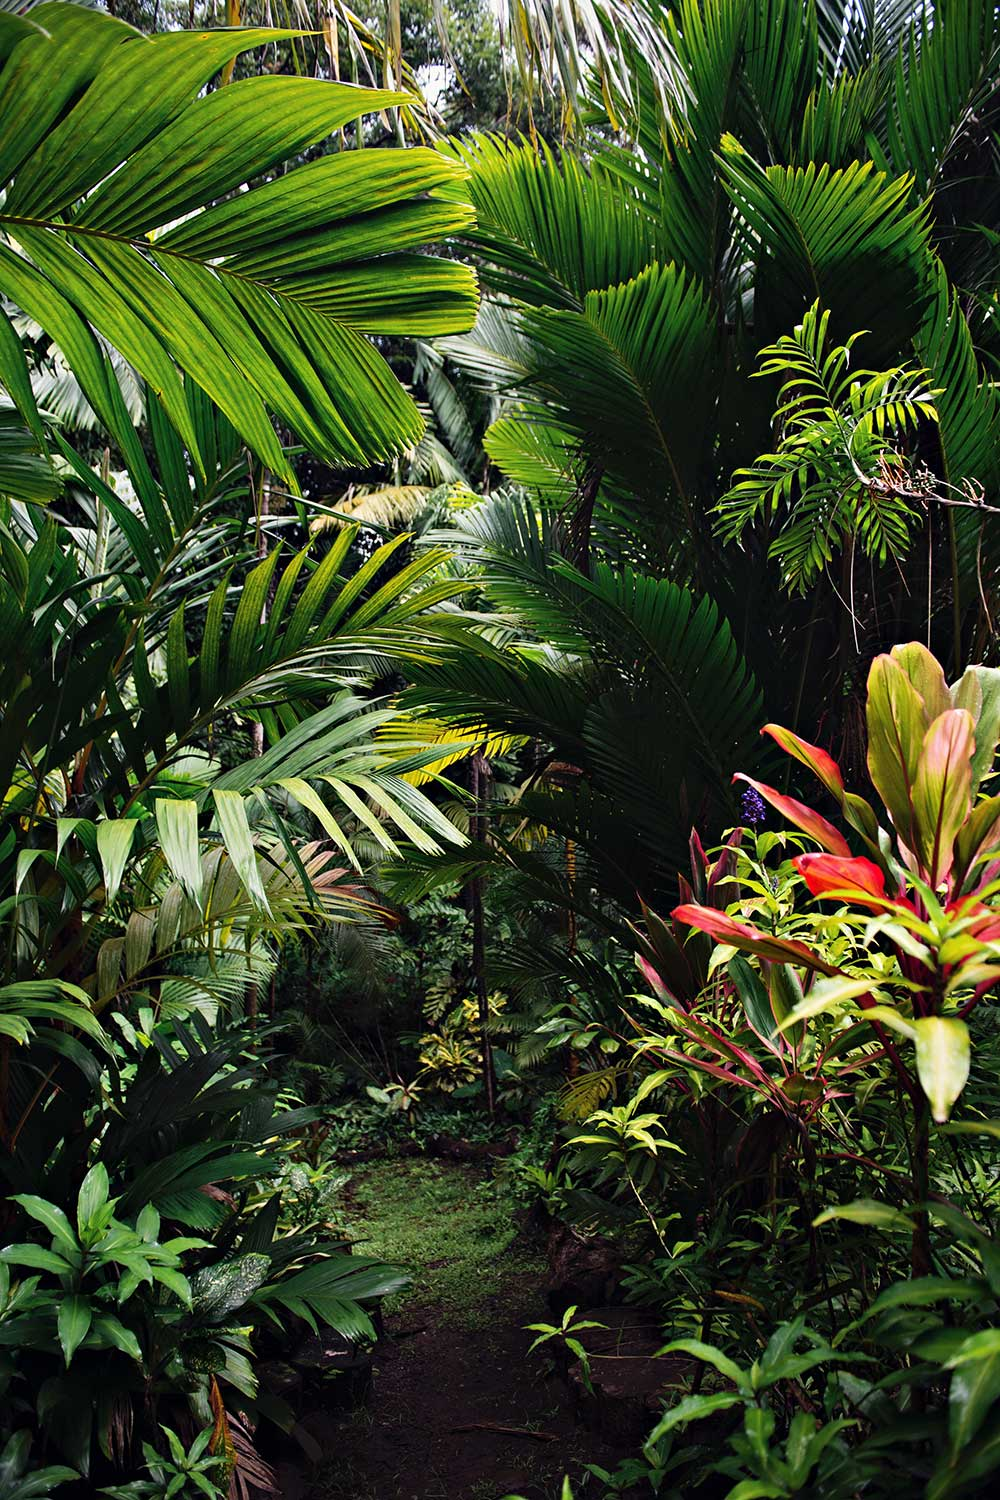 Various types of green plants: palms, ti leaves, etc.